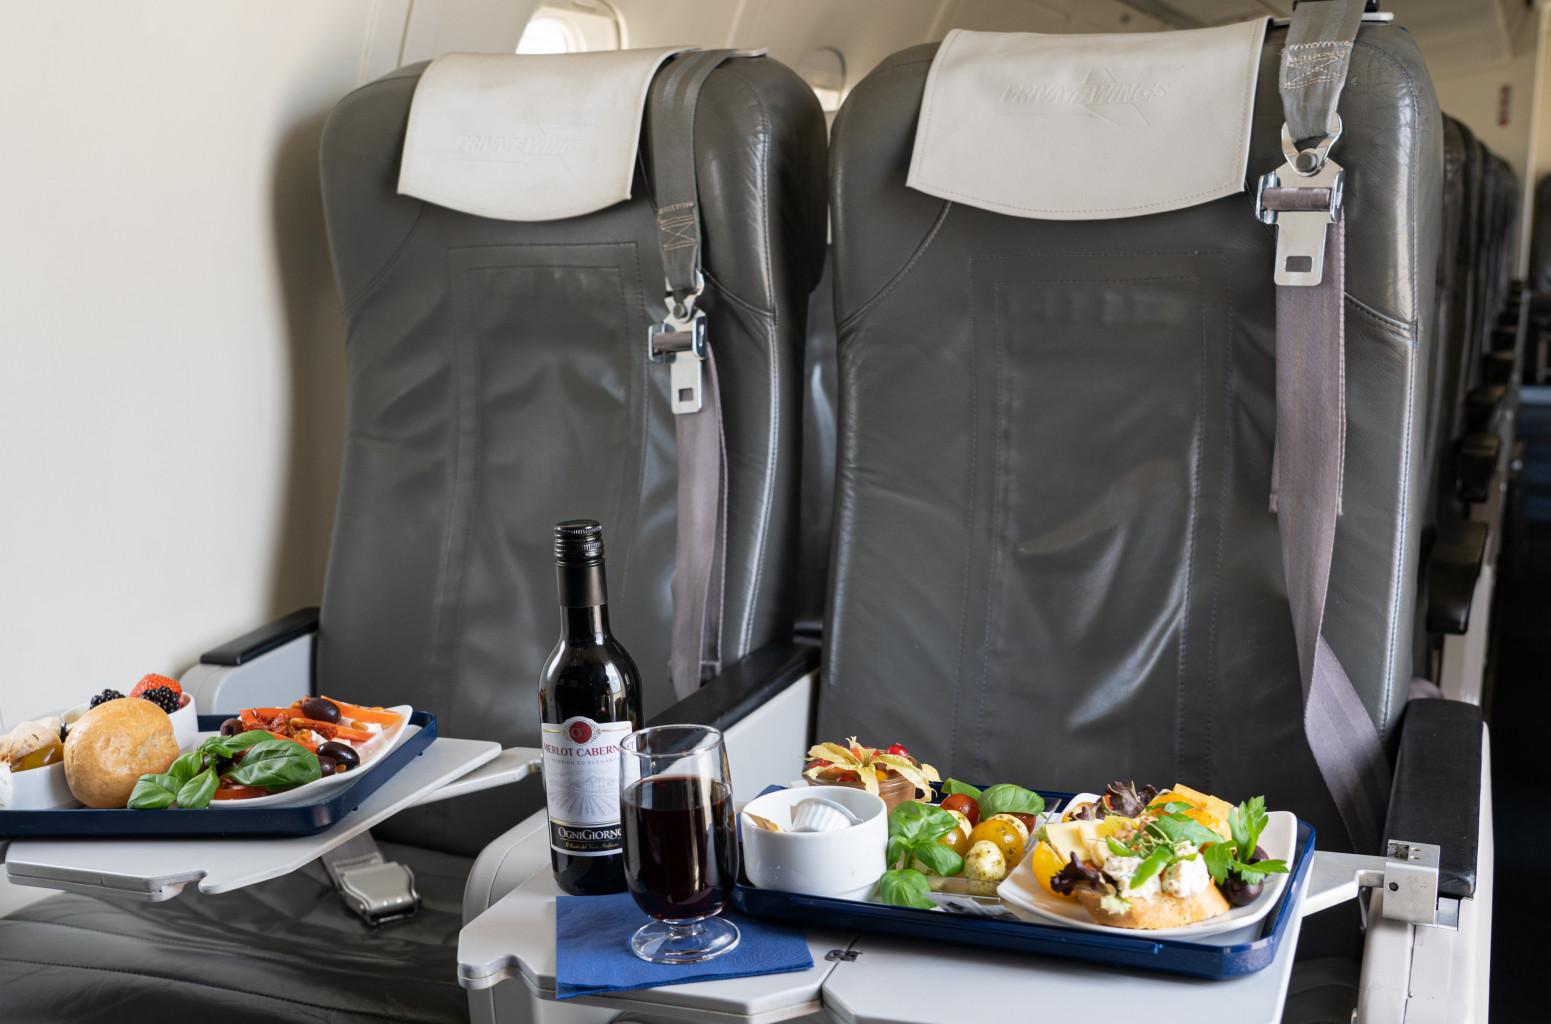 private wings offers VIP catering on board as well as sandwiches and snacks